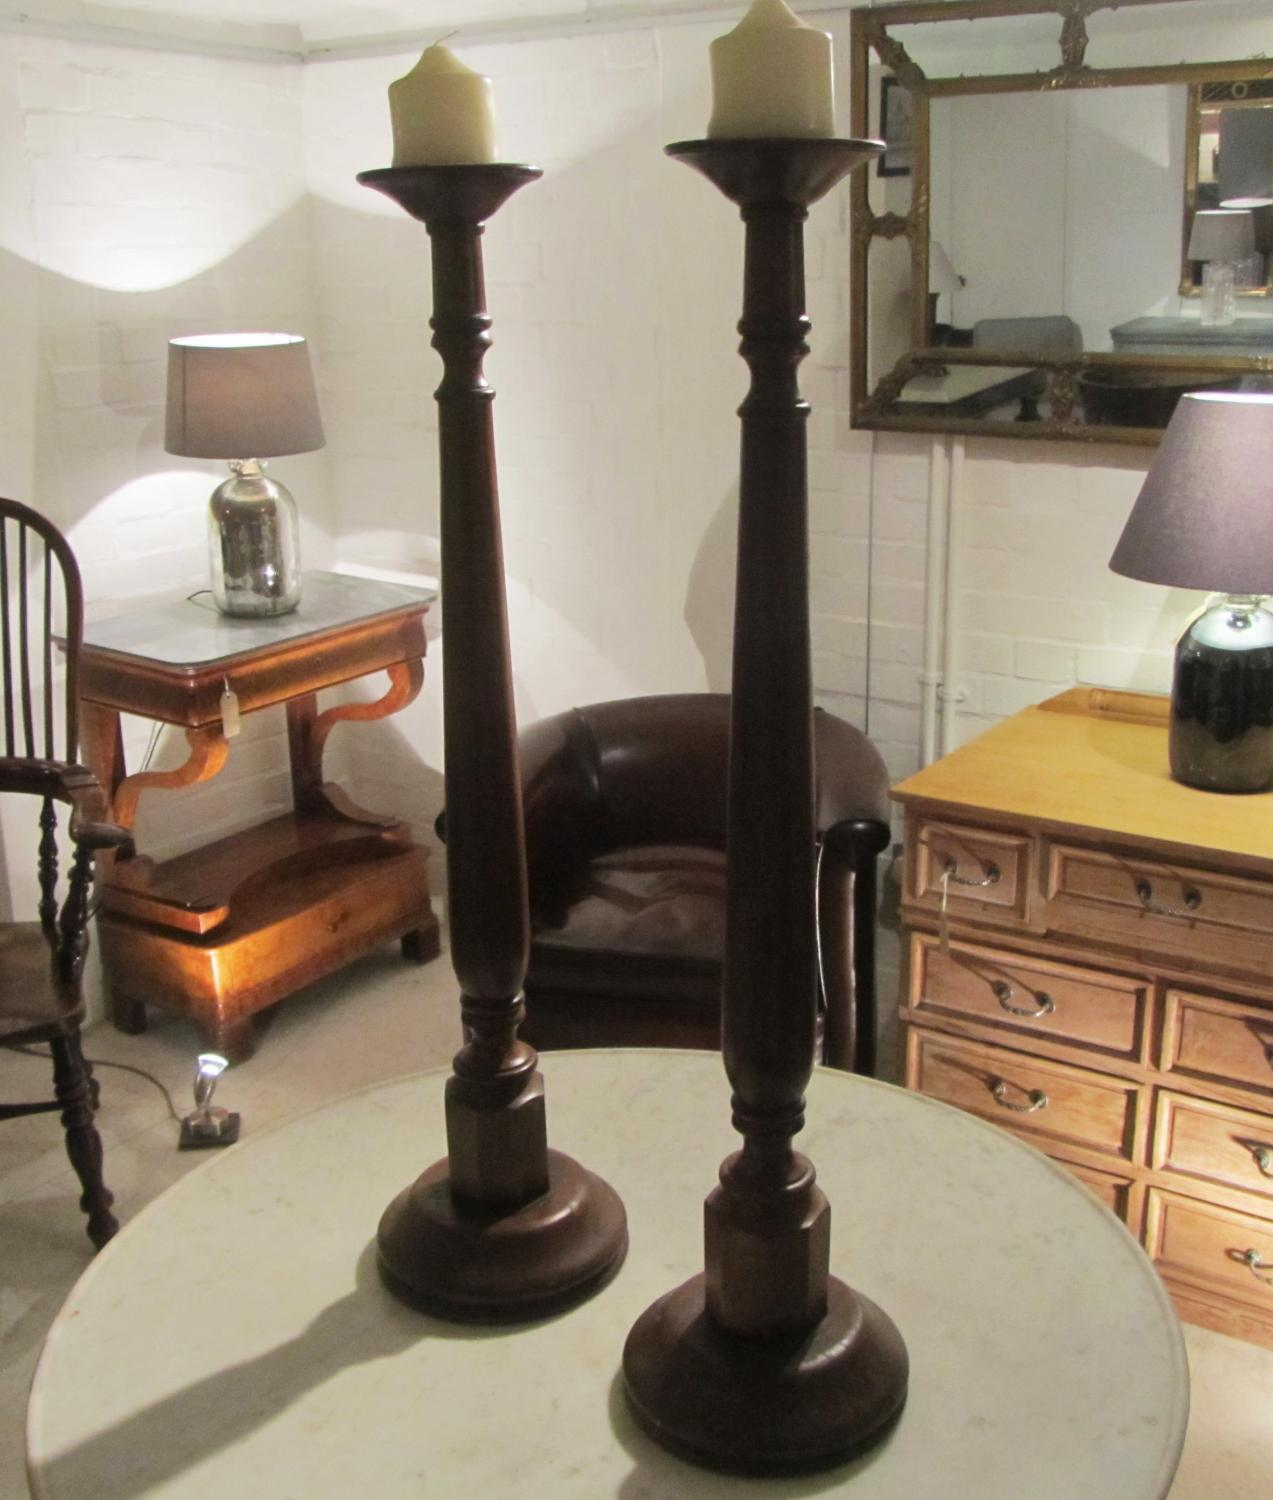 A large pair of candlesticks